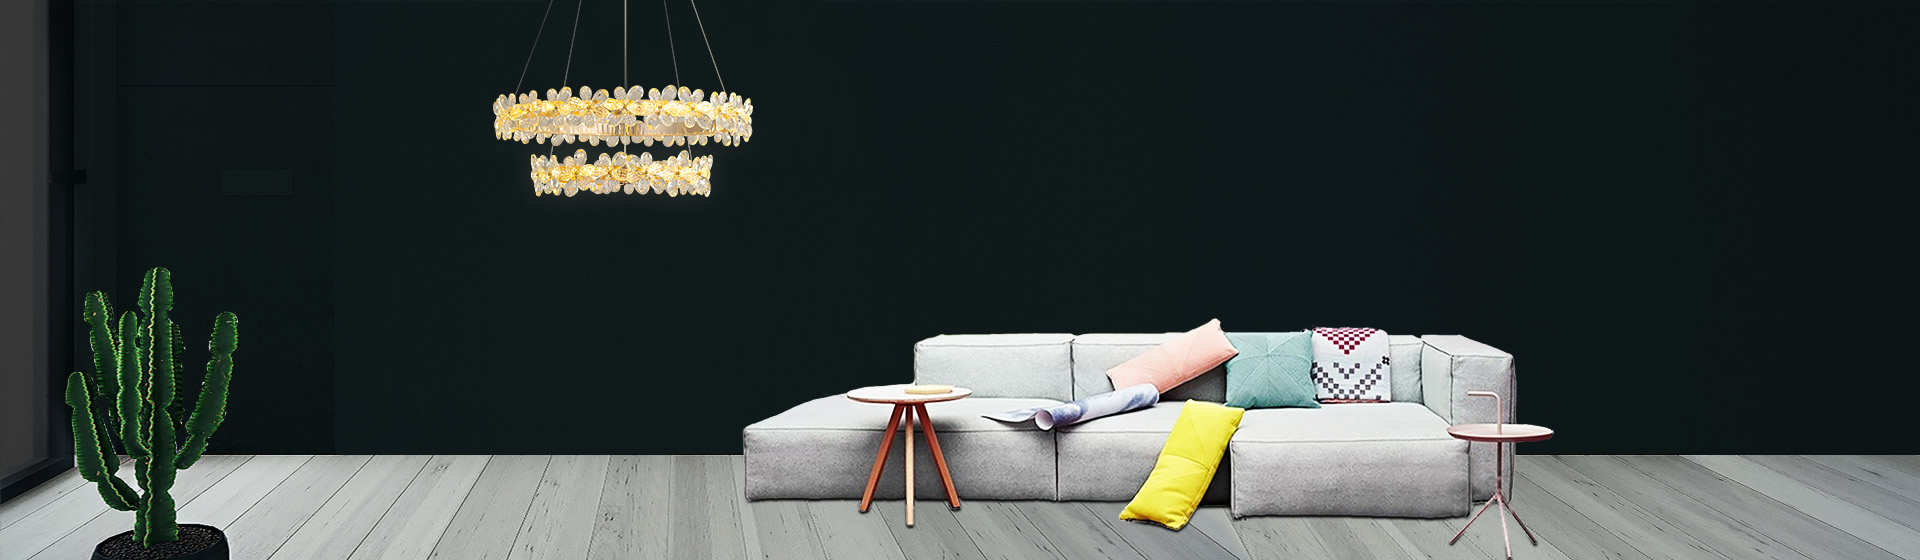 category-High-quality Wall Sconce Modern Wall Lamp On Ceou Modern lamp-CEOU-img